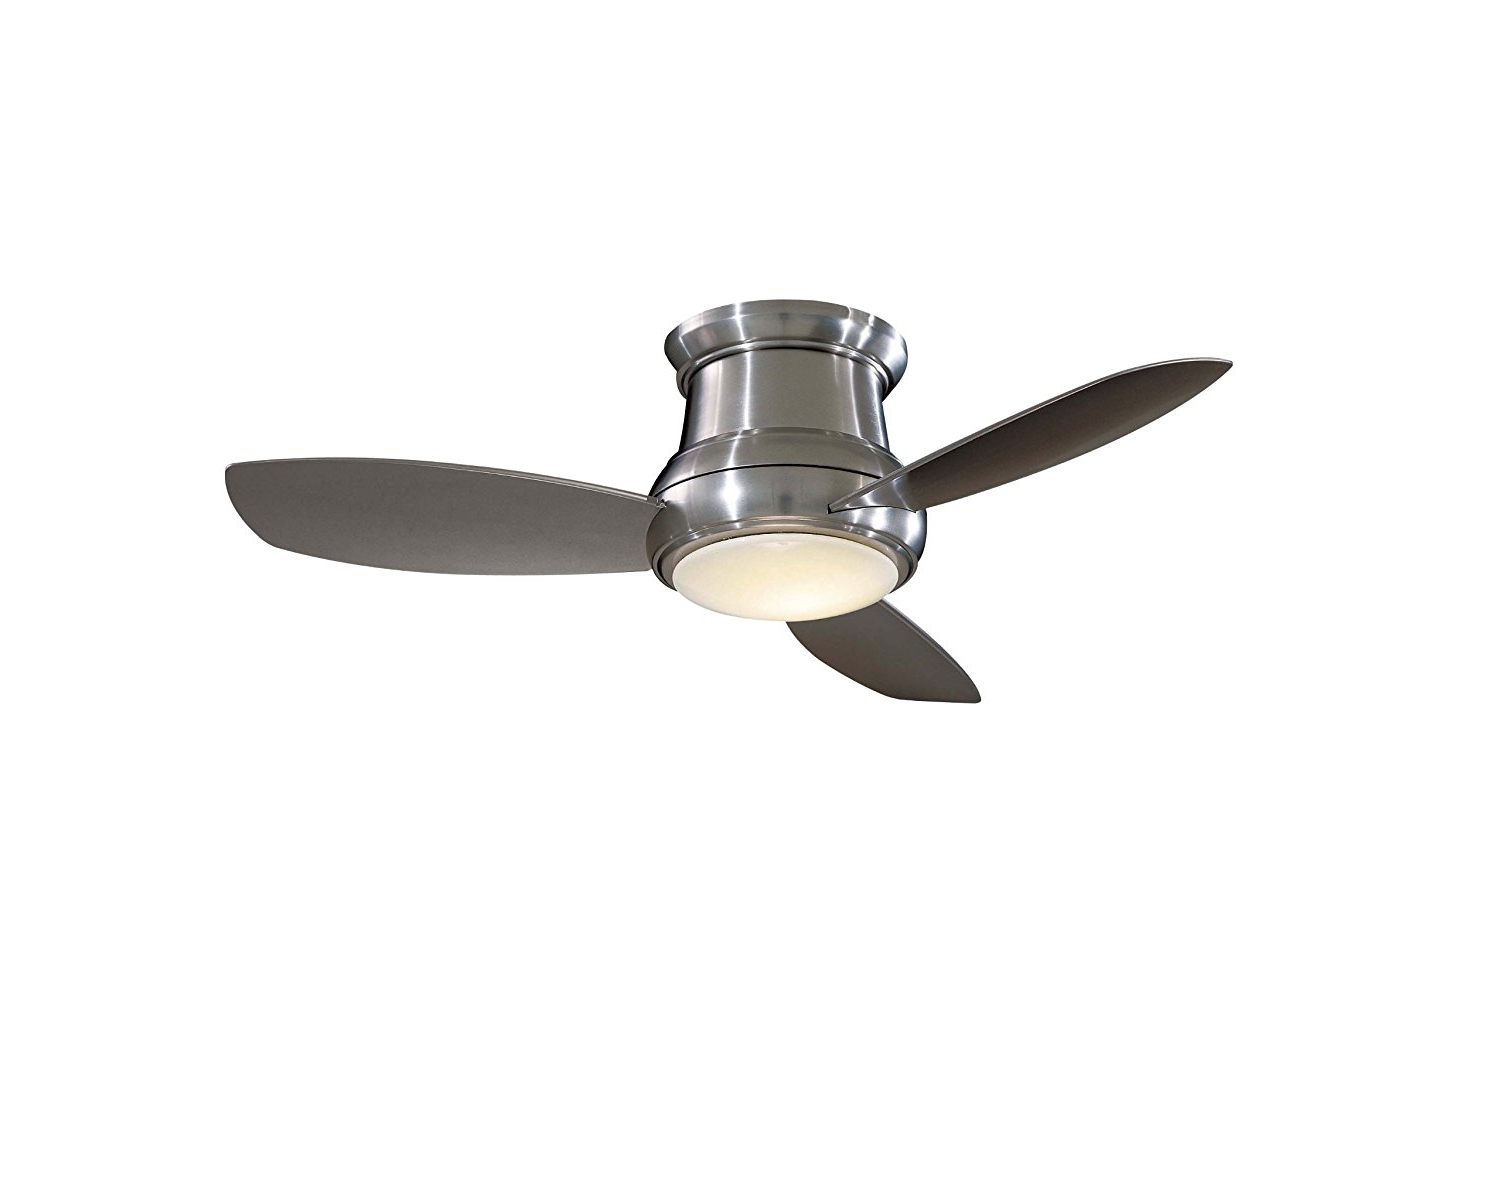 Best And Newest Outdoor Ceiling Fans For 7 Foot Ceilings Throughout Ceiling Fan: Captivating Flush Mount Ceiling Fan With Light Ideas (View 8 of 20)